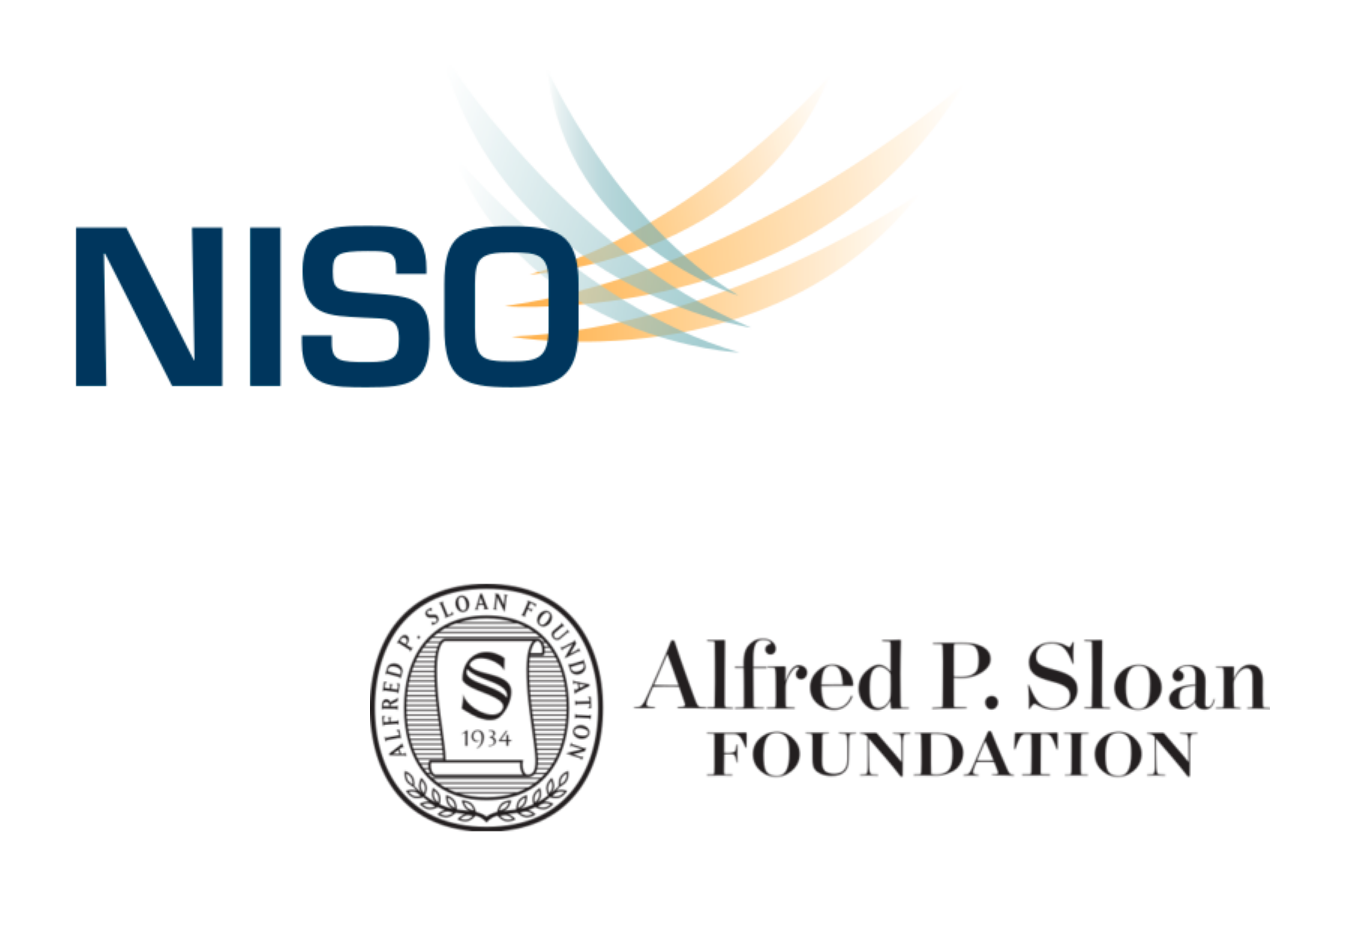 NISO and Alfred P. Sloan Foundation logos